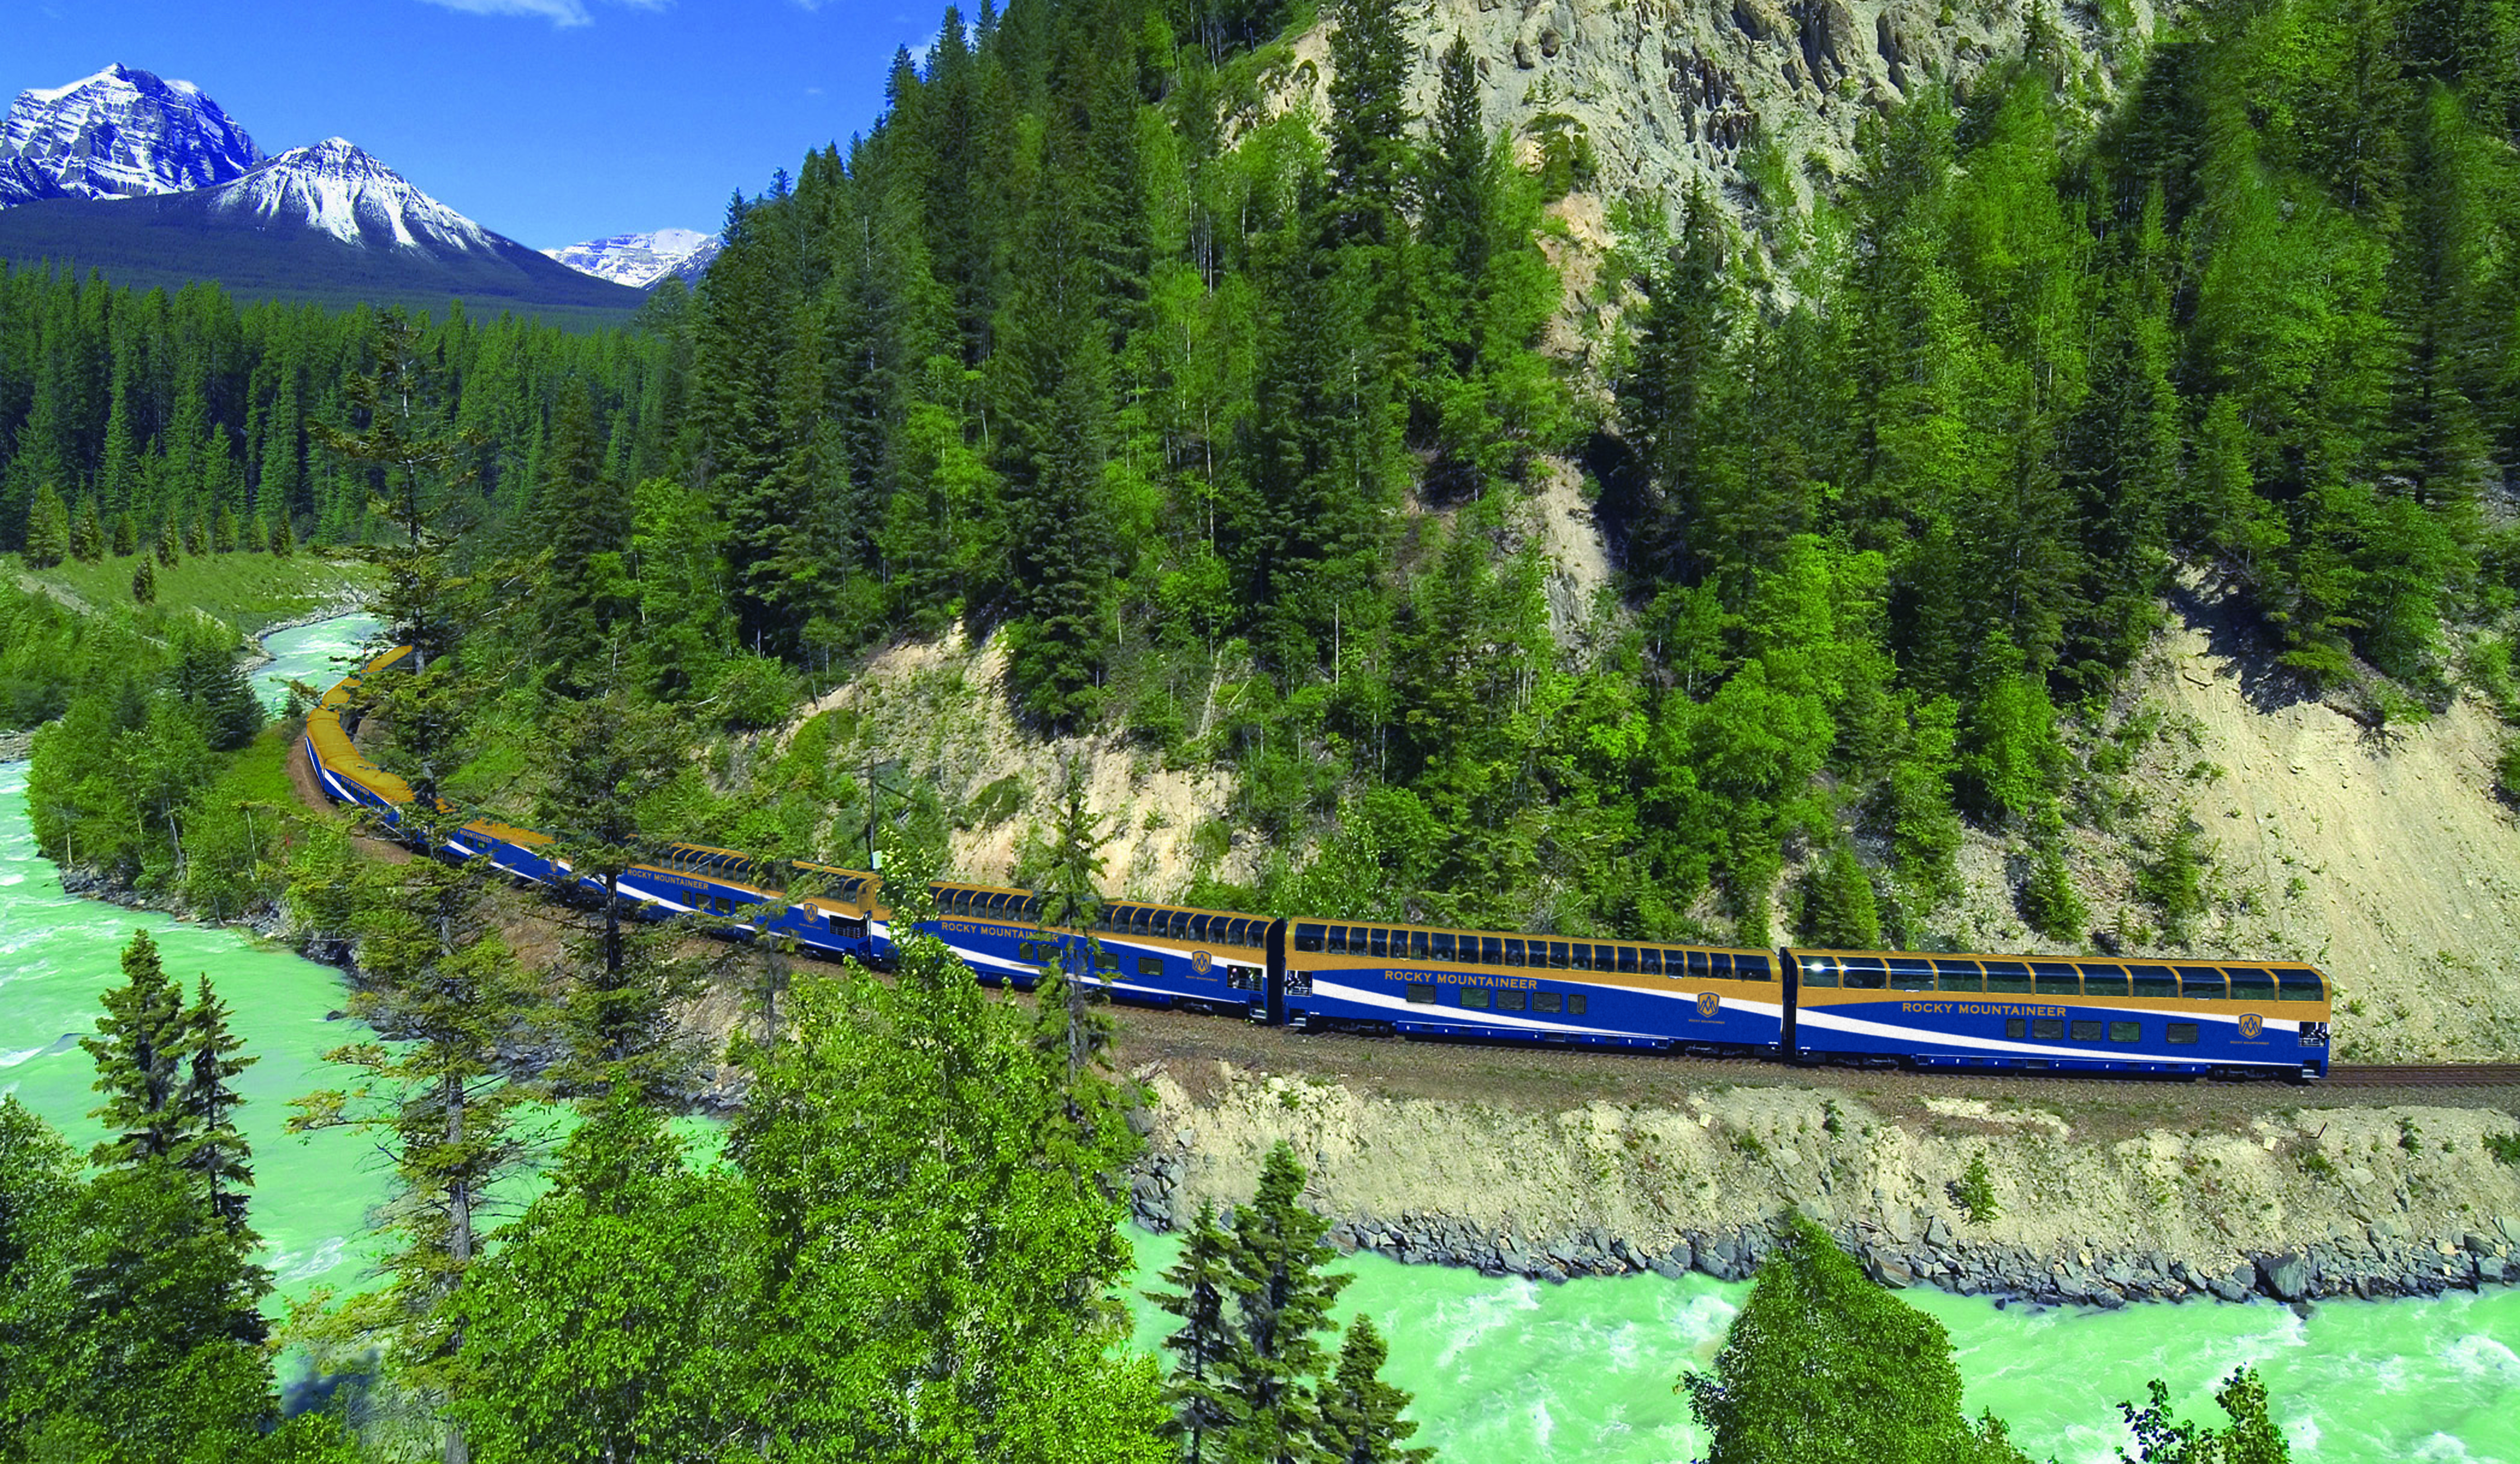 Rocky Mountaineer in the Canadian Rockies. Location is in the Kicking Horse Canyon east of Golden, B.C.